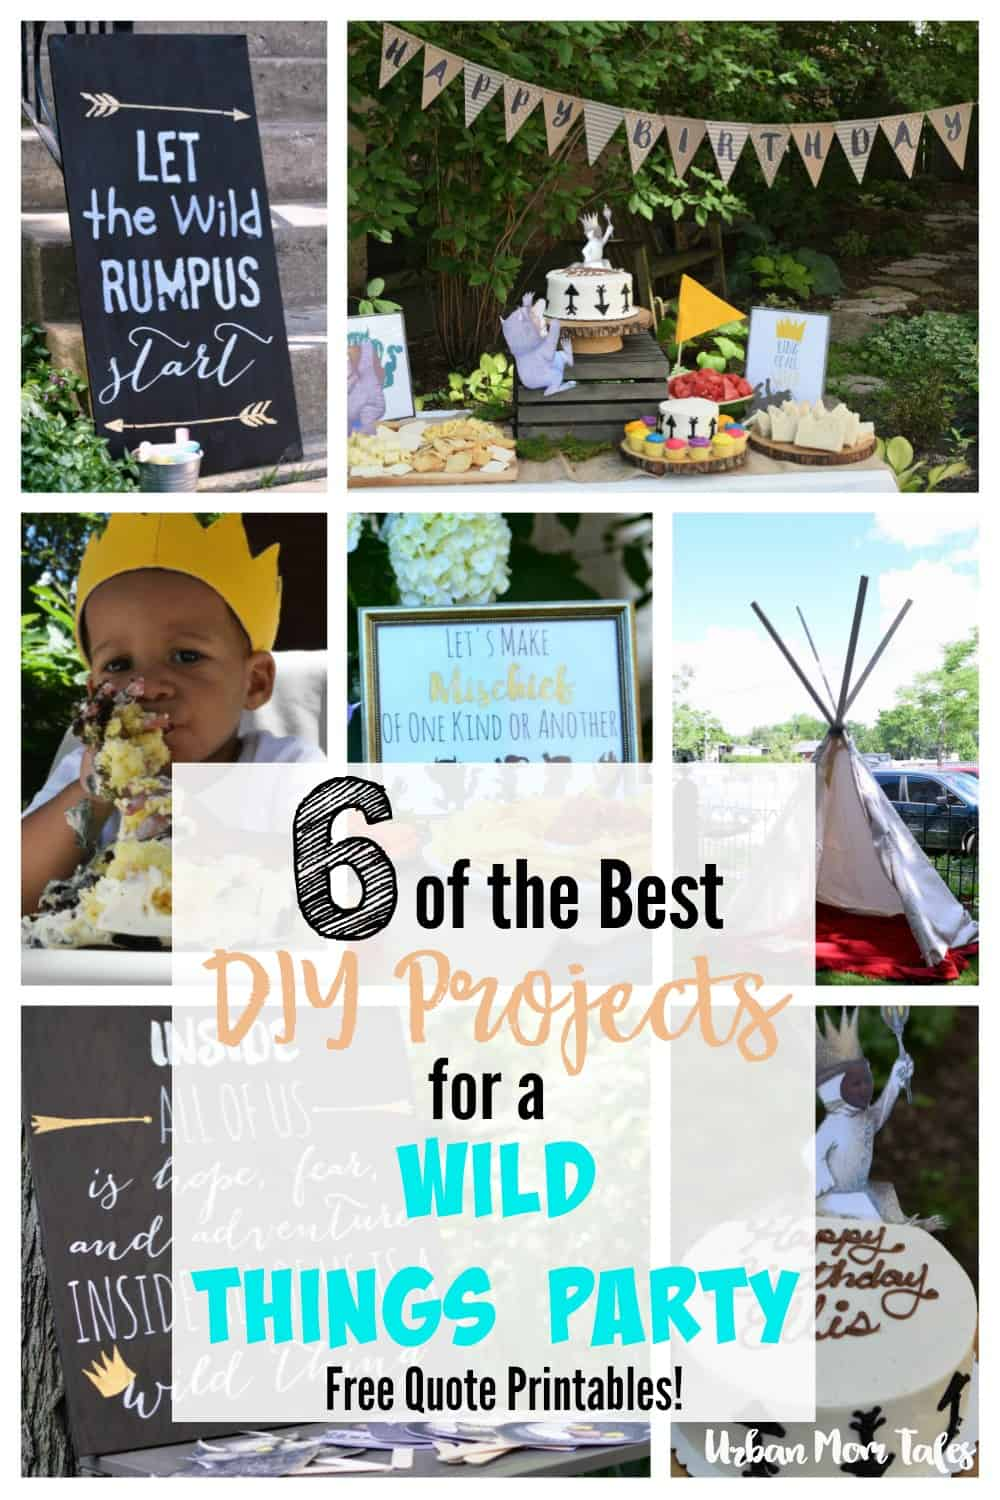 6 of the best and easiest DIY projects for a Wild Things Party. No sewing or artistic skills needed, & budget friendly! Perfect for a first birthday party! Includes a set of 6 wild things party printables to make your own signs and posters easily.